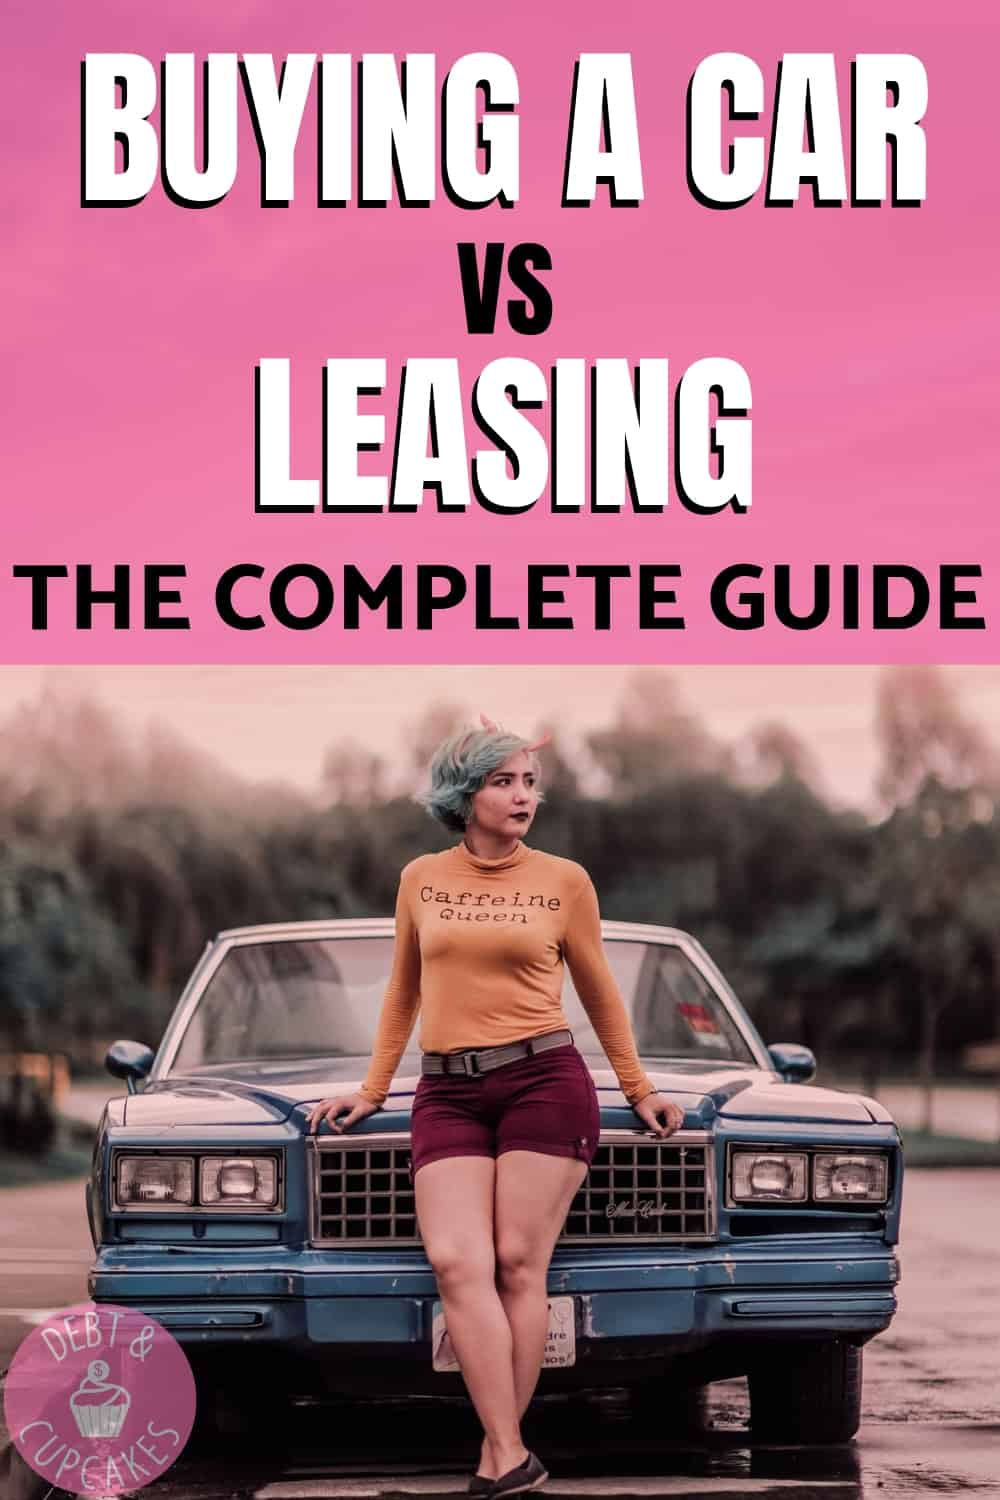 Buying a car vs leasing. Which method will help you save the most money? Once choice will help you become wealthy!